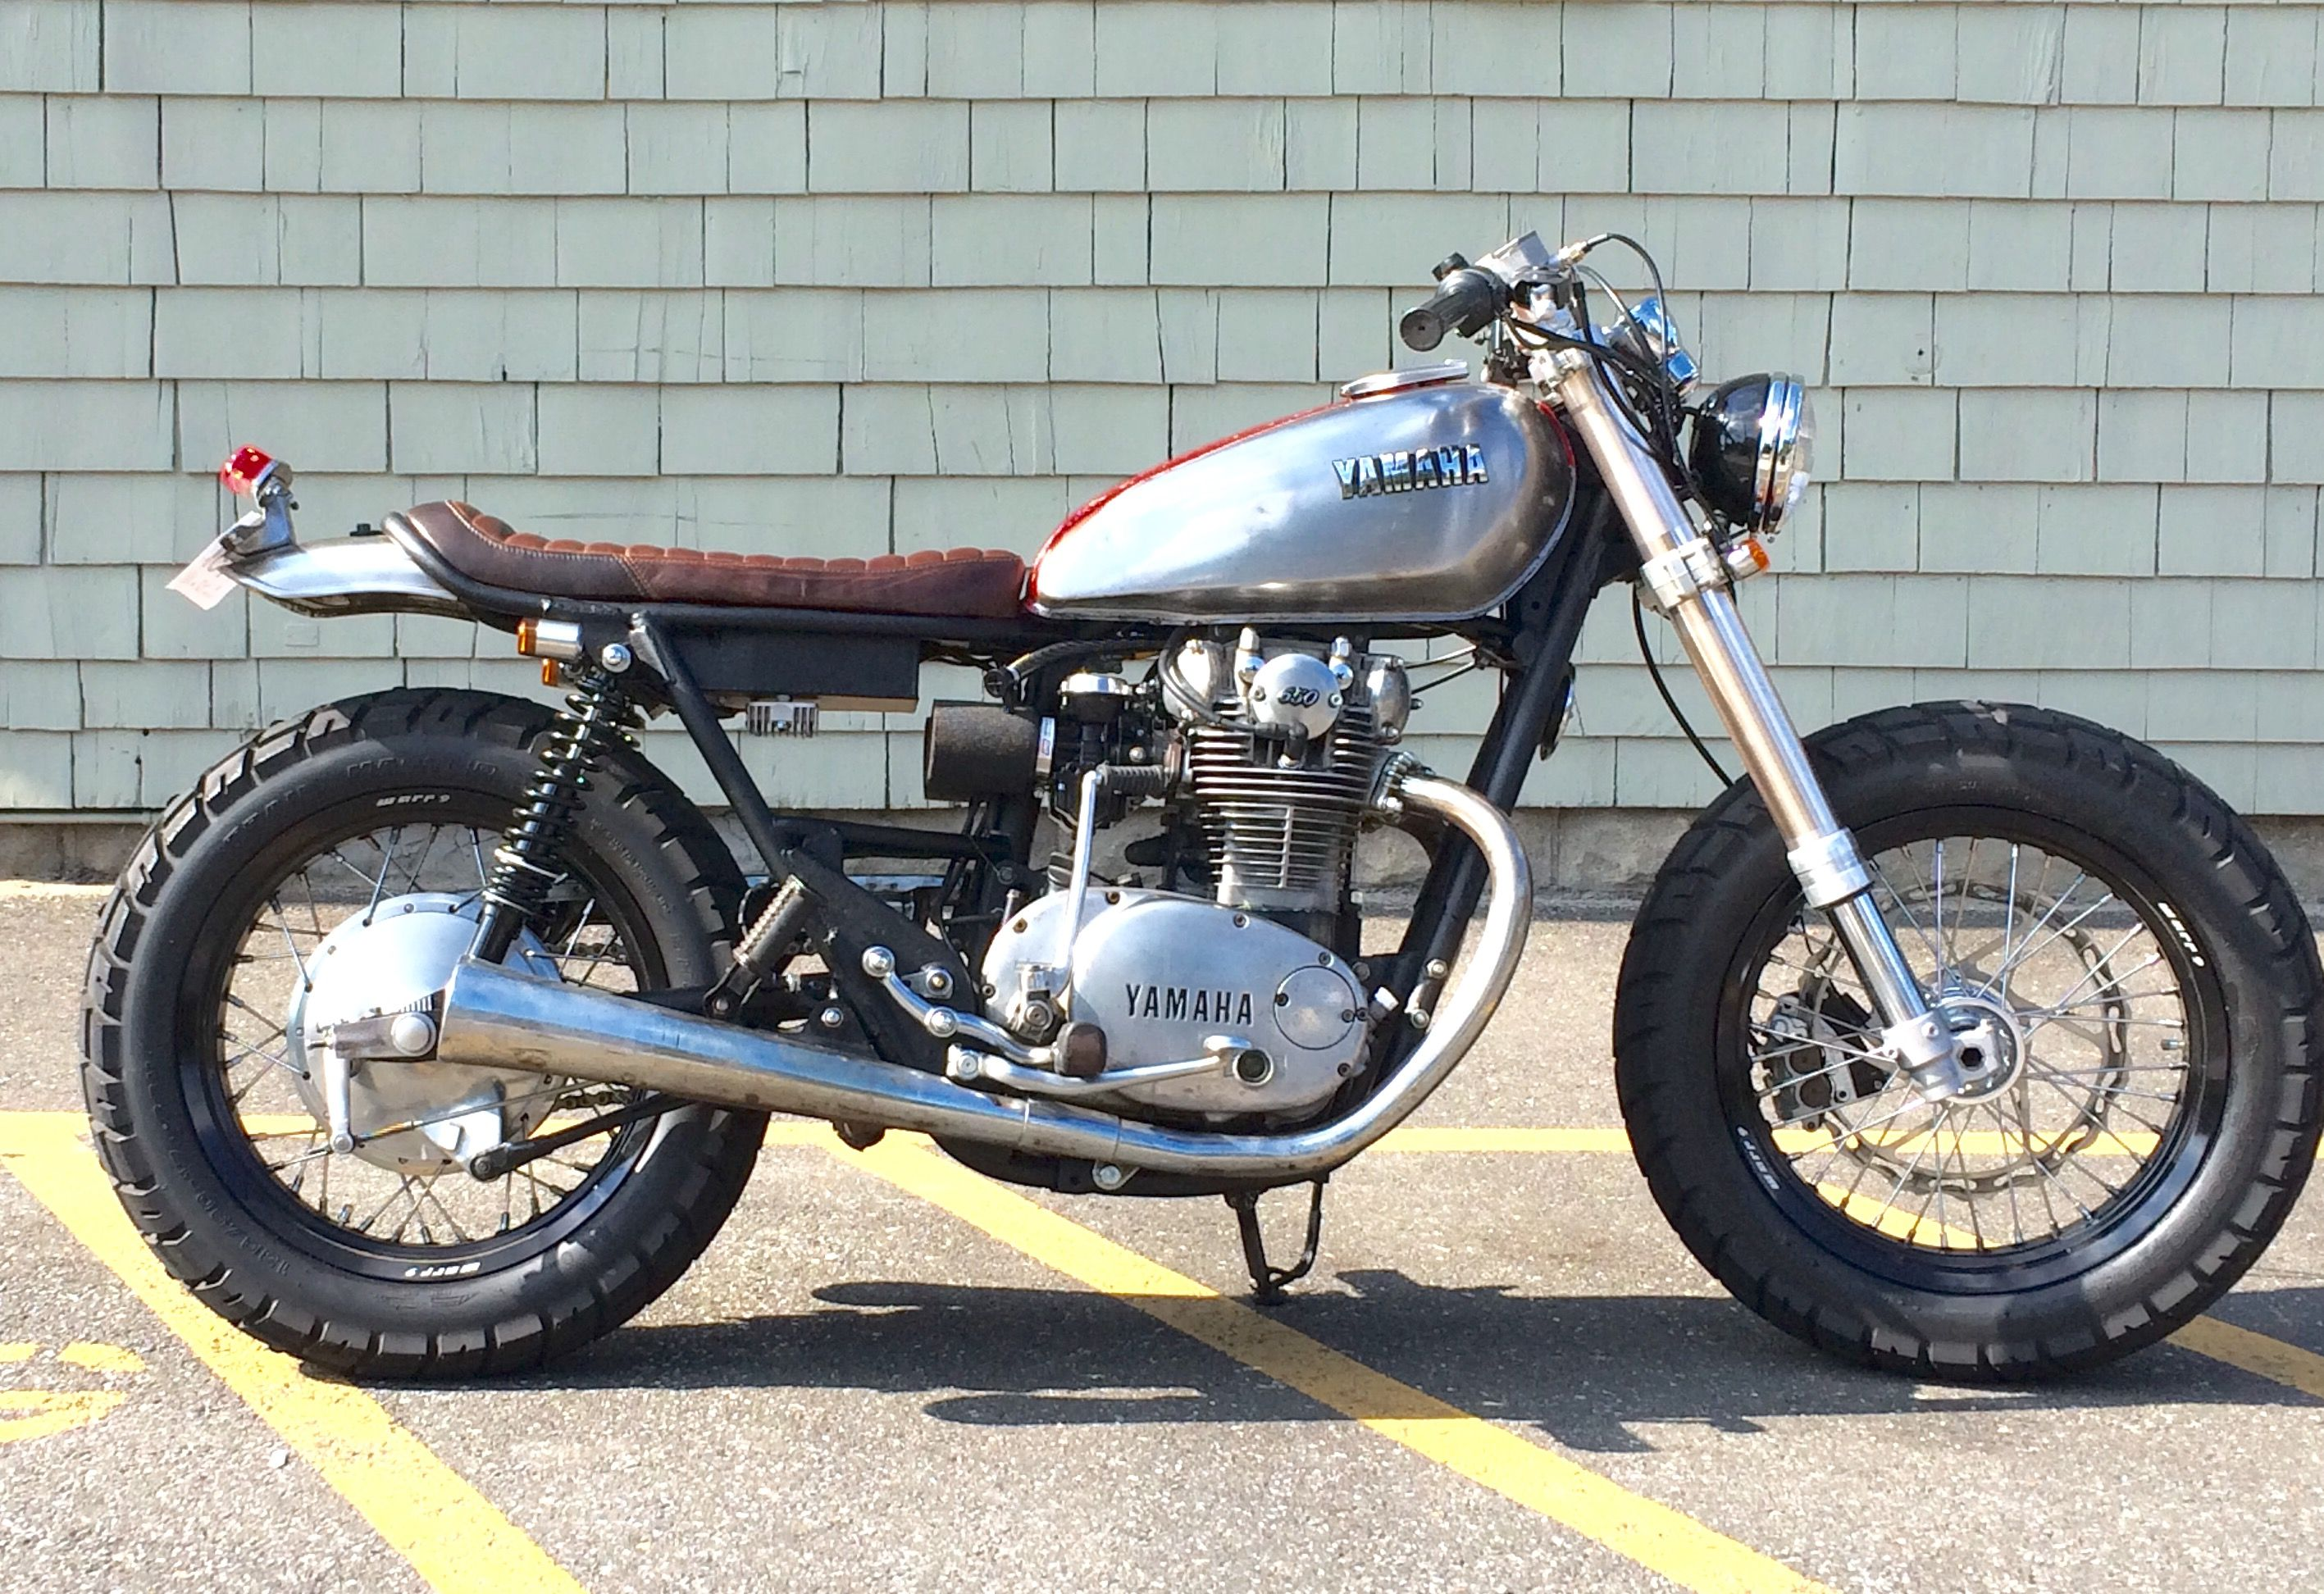 Yamaha xs650 street tracker from mule motorcycles custom motorcycles pinterest street tracker flat tracker and exhausted